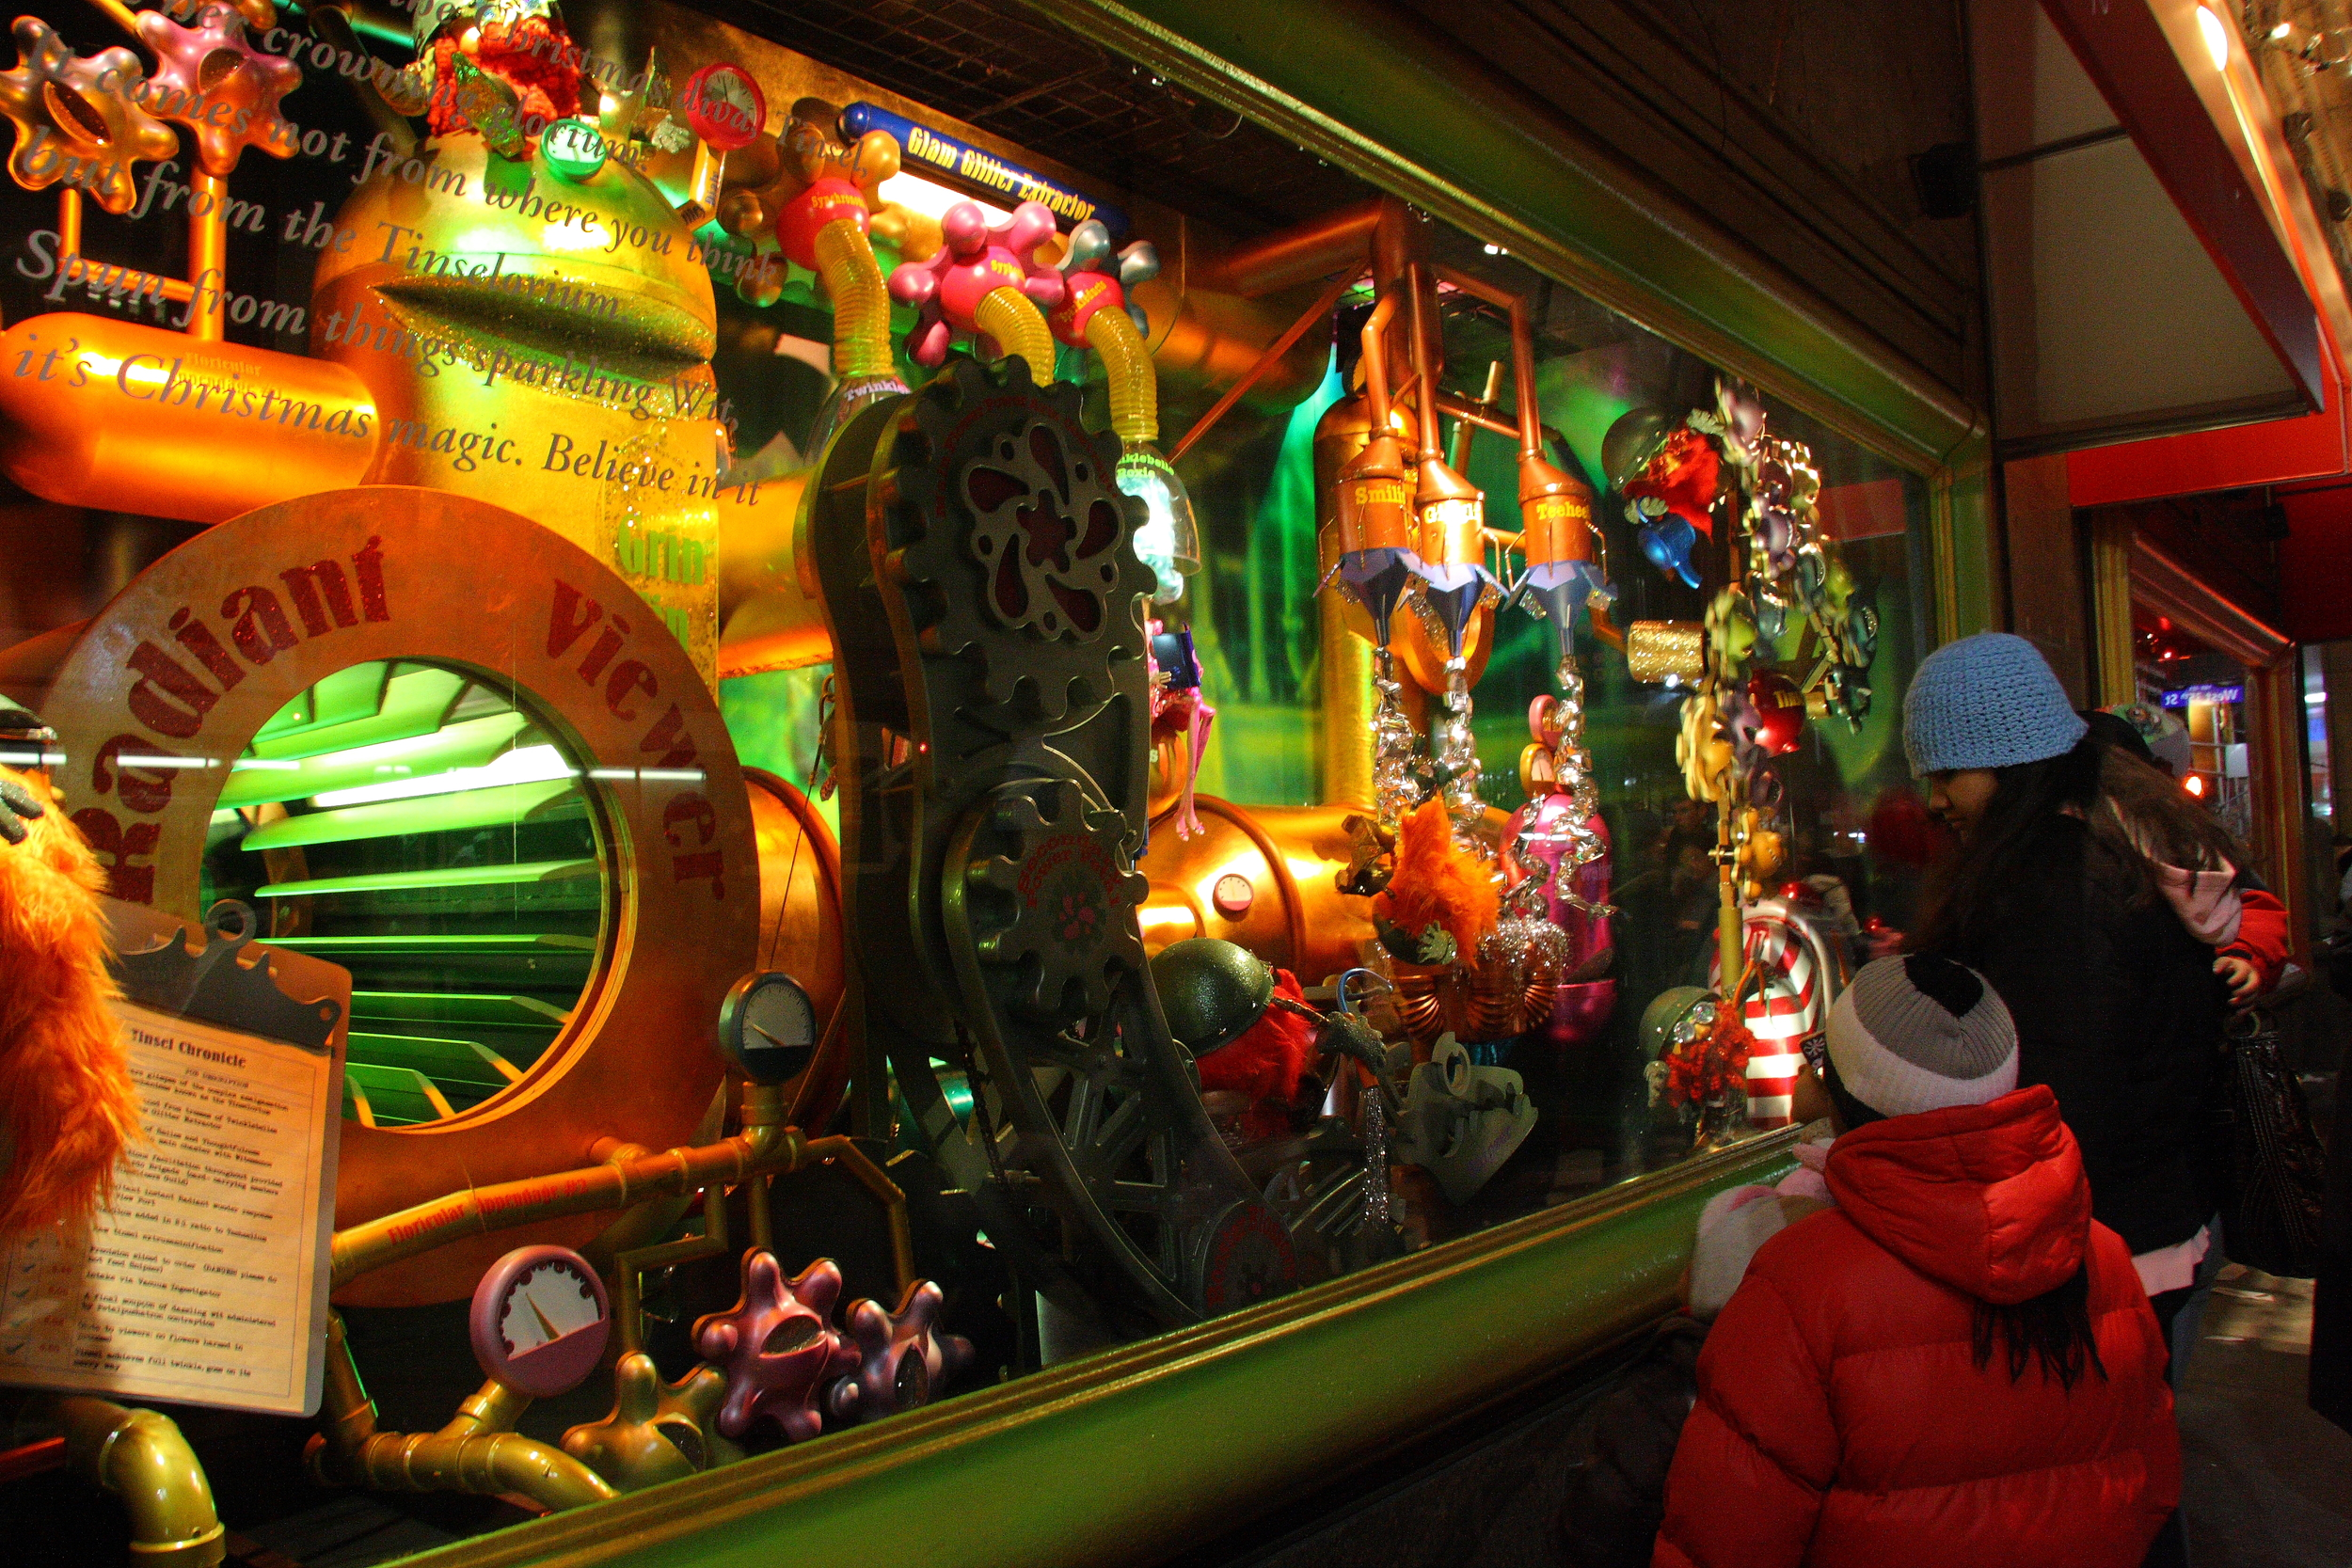 Why wait for Christmas...fun, funky, quirkydowntown windows should be part of the uniquedowntown experience all year.